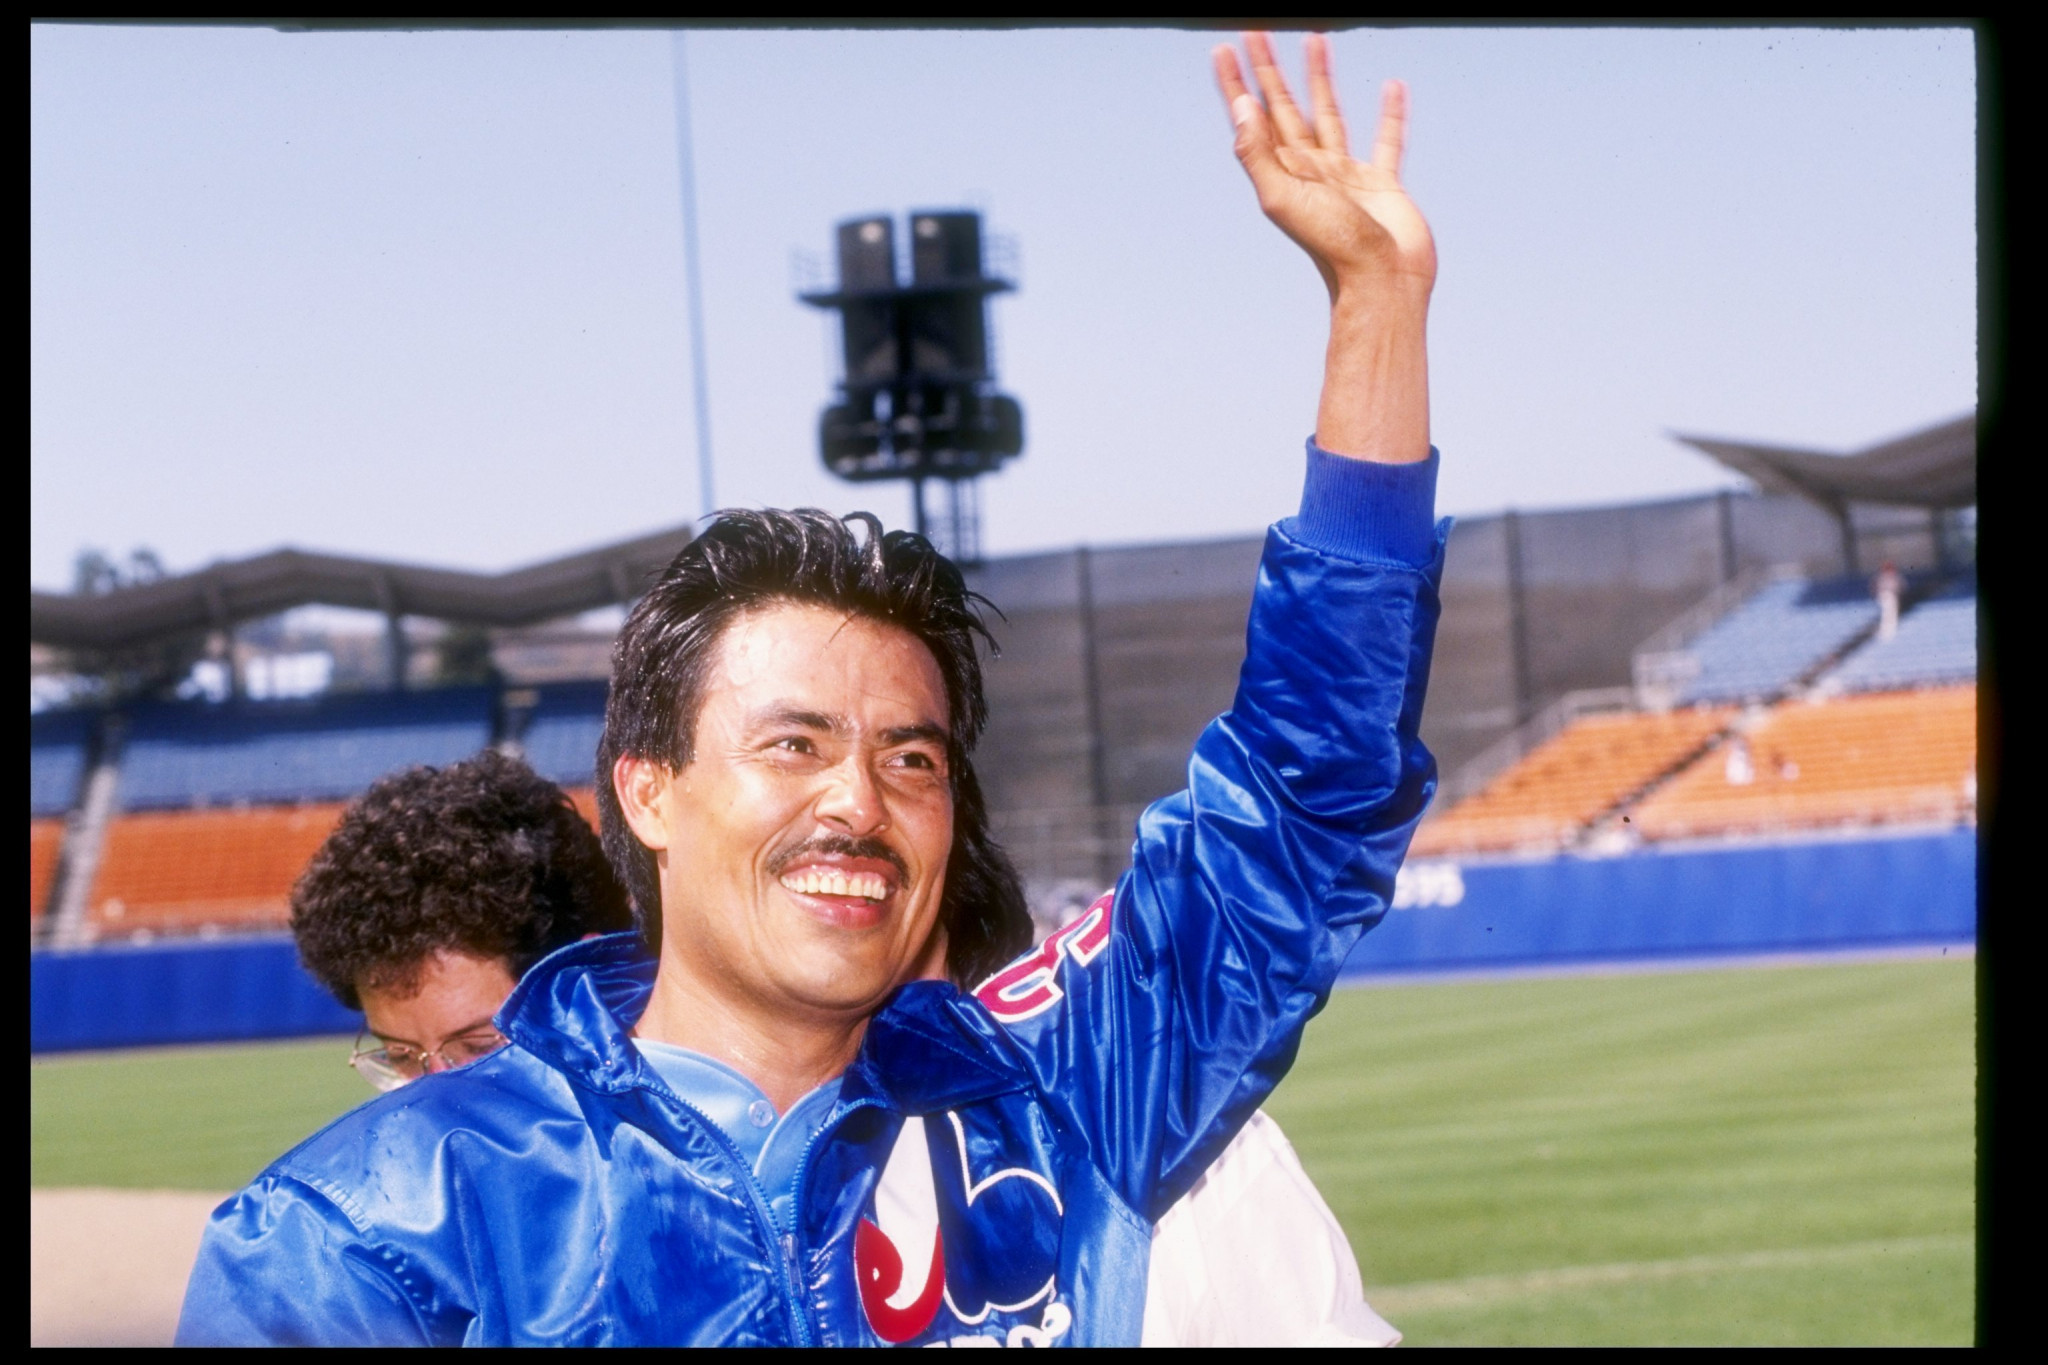 Dennis Martínez has set-up a fundraiser for Nicaraguan health care workers ©Getty Images